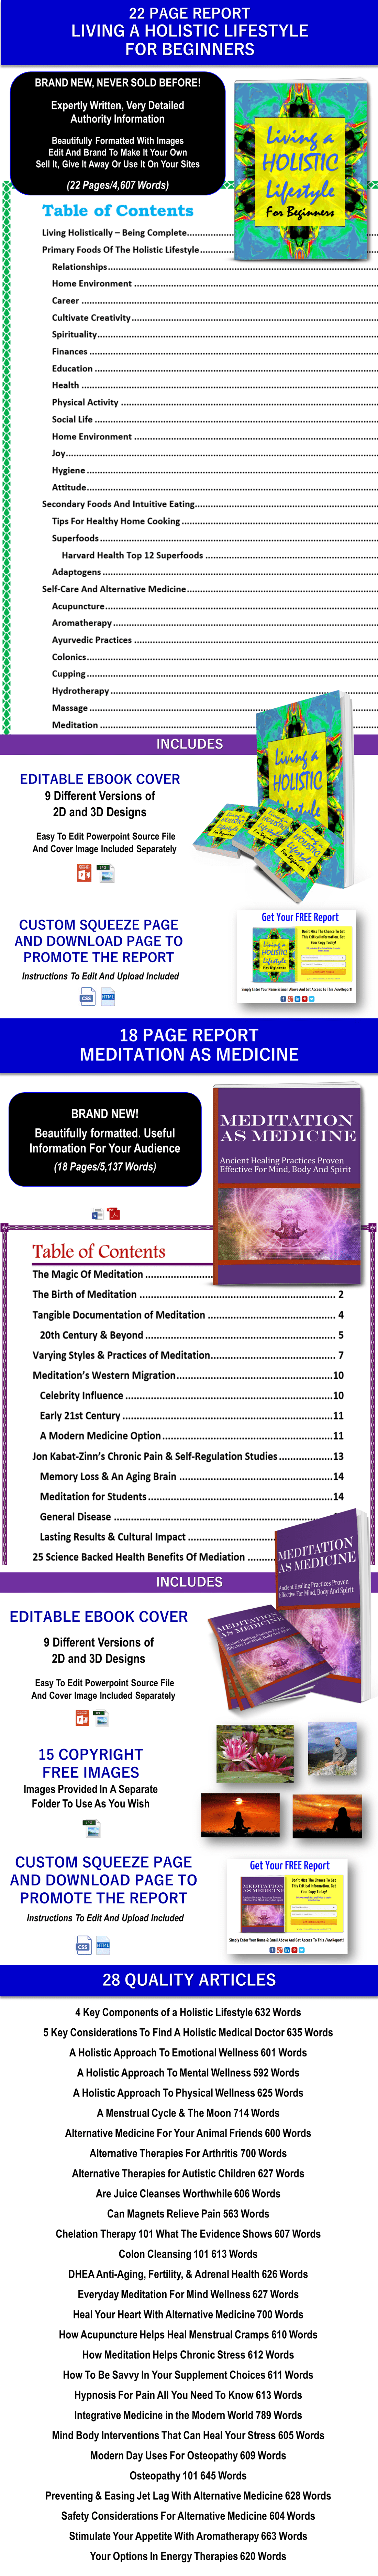 Holistic Lifestyle and Meditation Content - Private Lable Rights